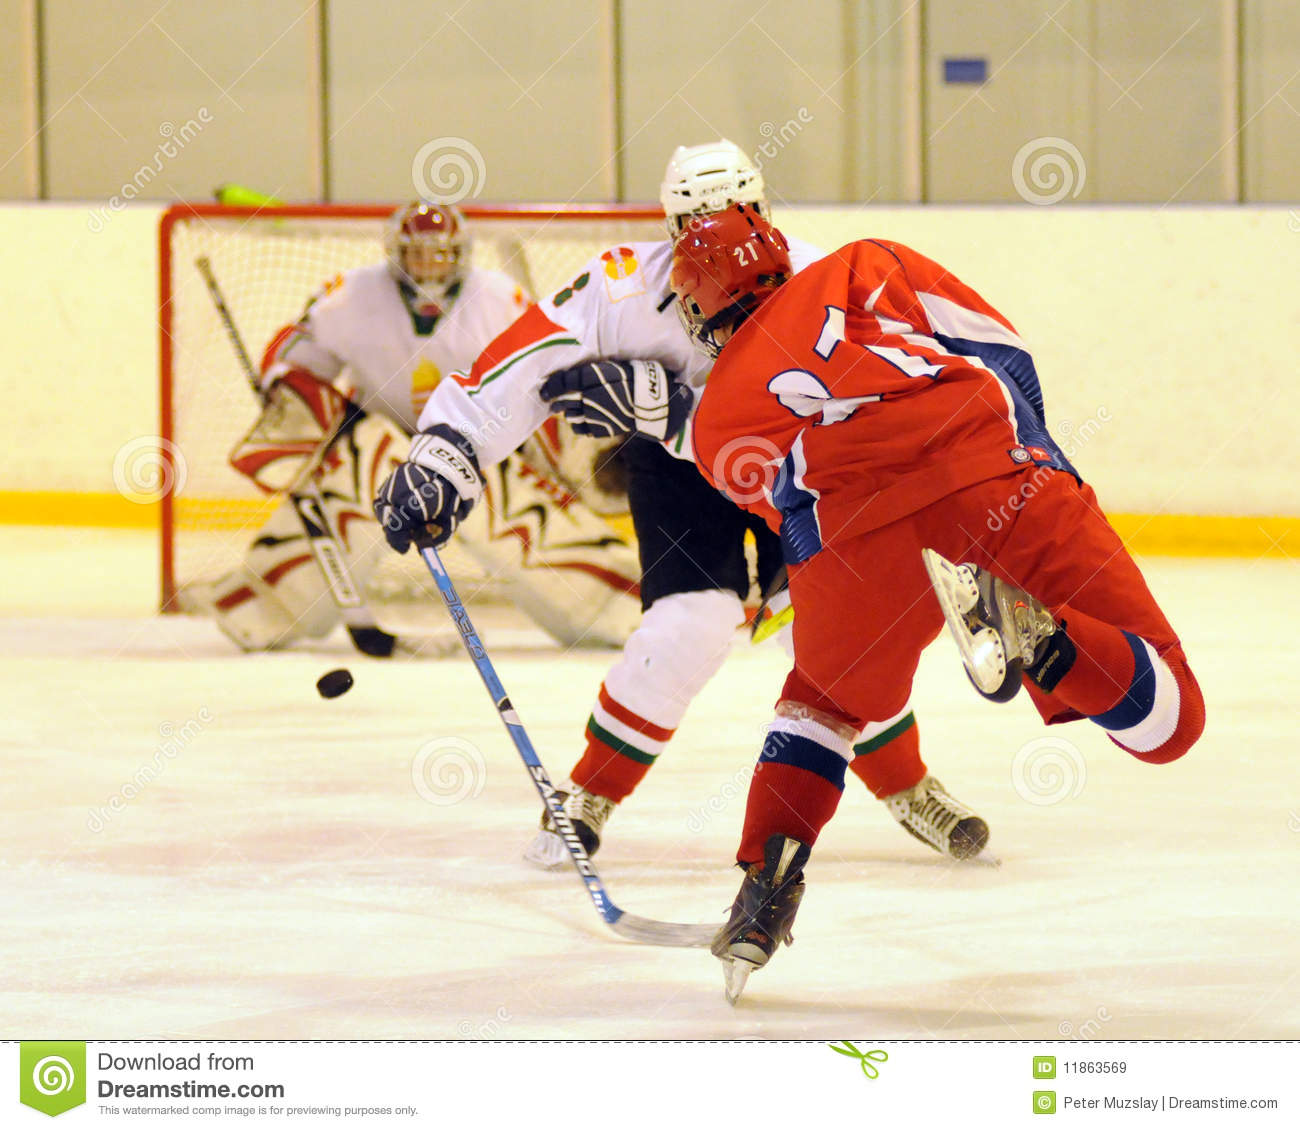 Hungary - Russia youth national ice-hockey match